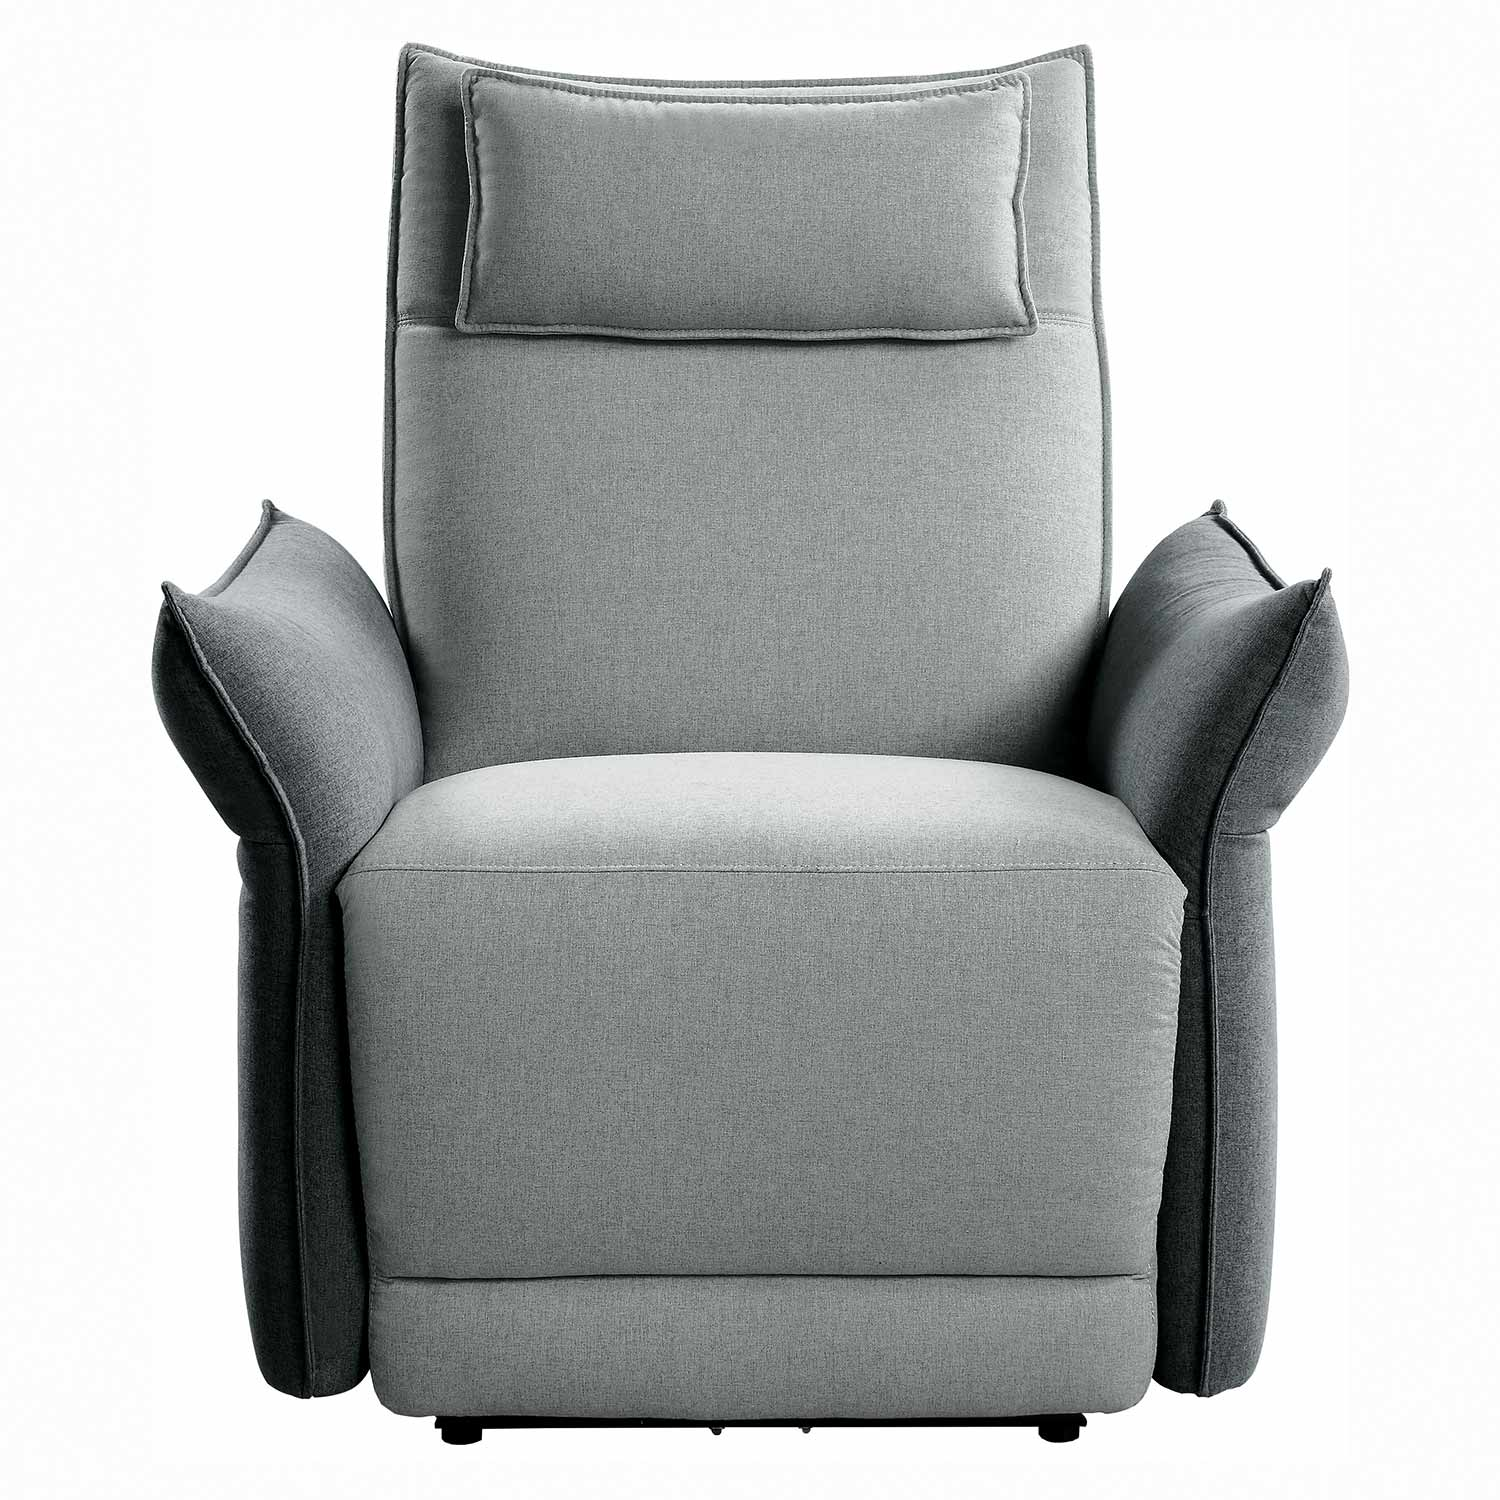 Homelegance Linette Power Reclining Chair with Power Headrest - Gray